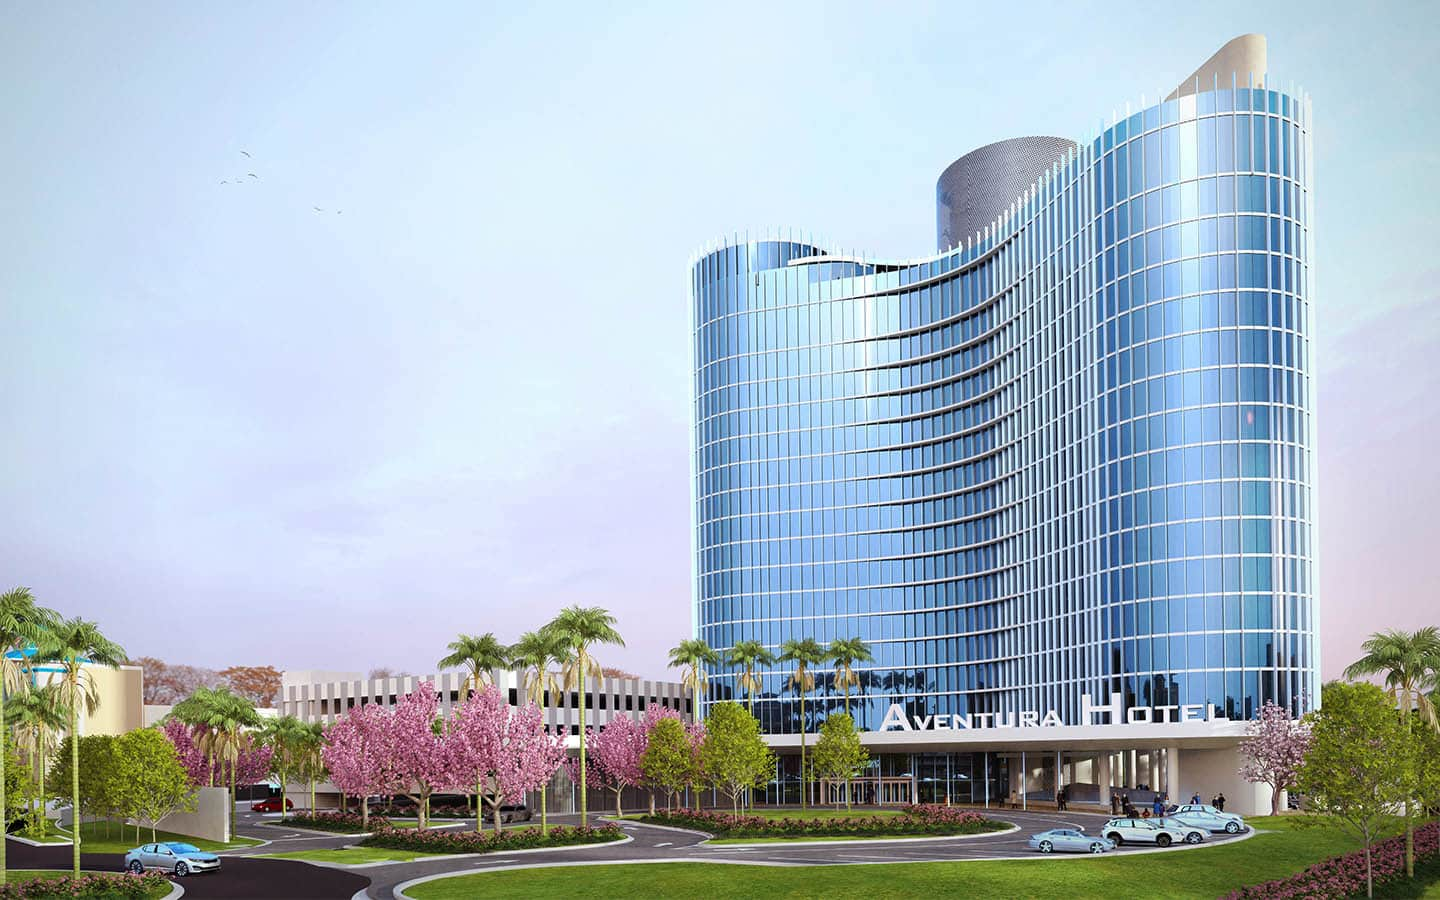 Universal Orlando announces sixth on-site hotel: Aventura Hotel